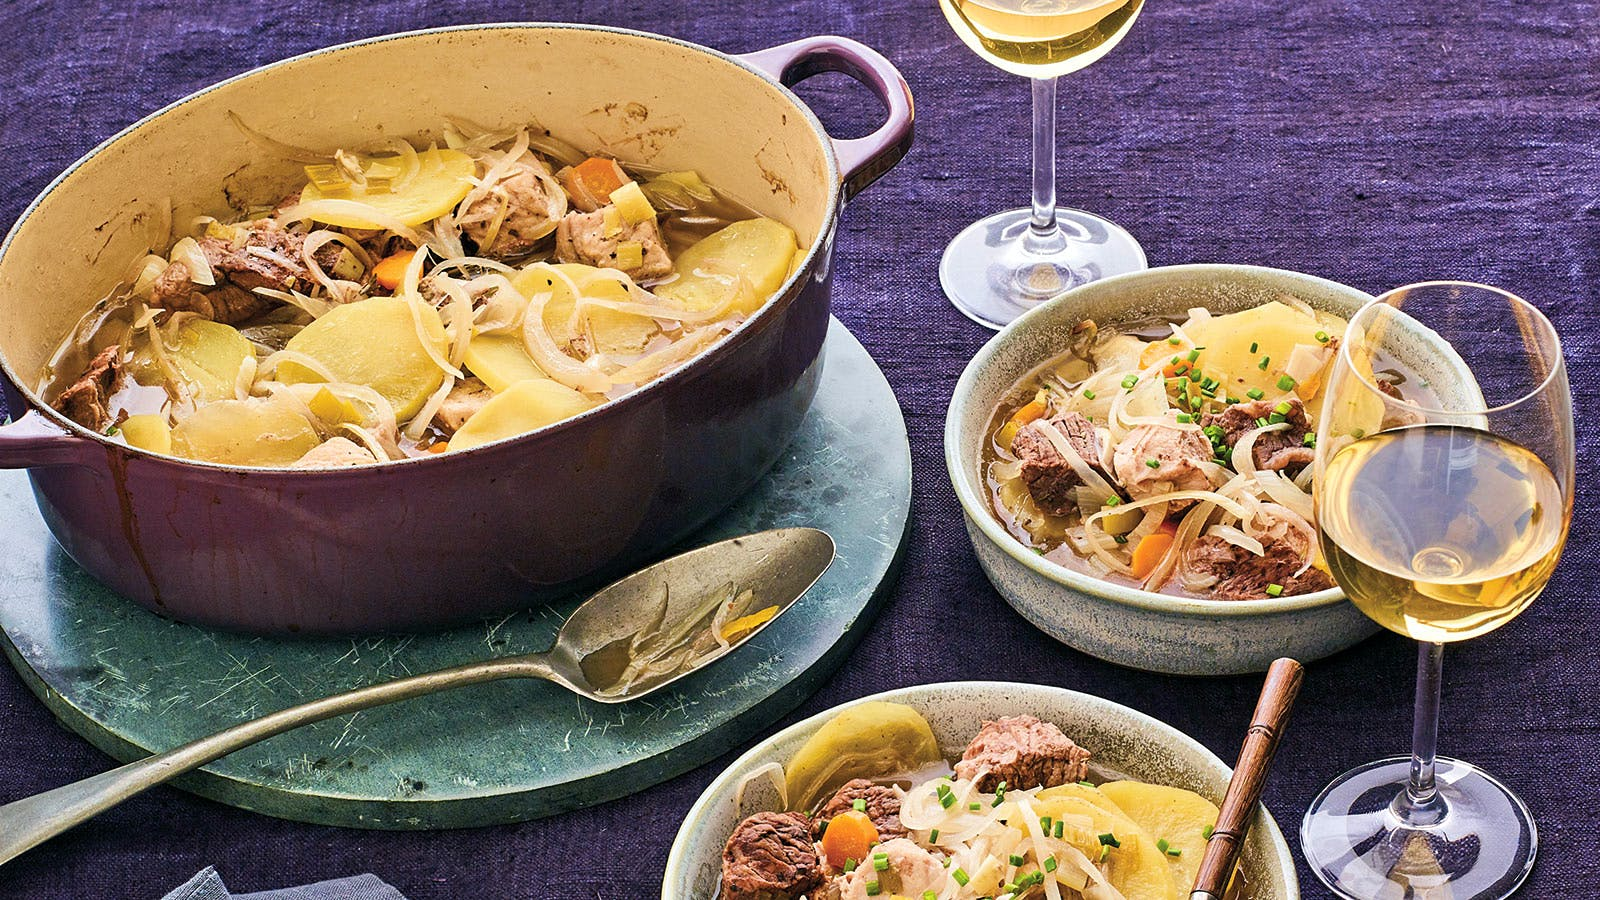 Perfect Match Recipe: Meat, Leek and Potato Casserole with Riesling